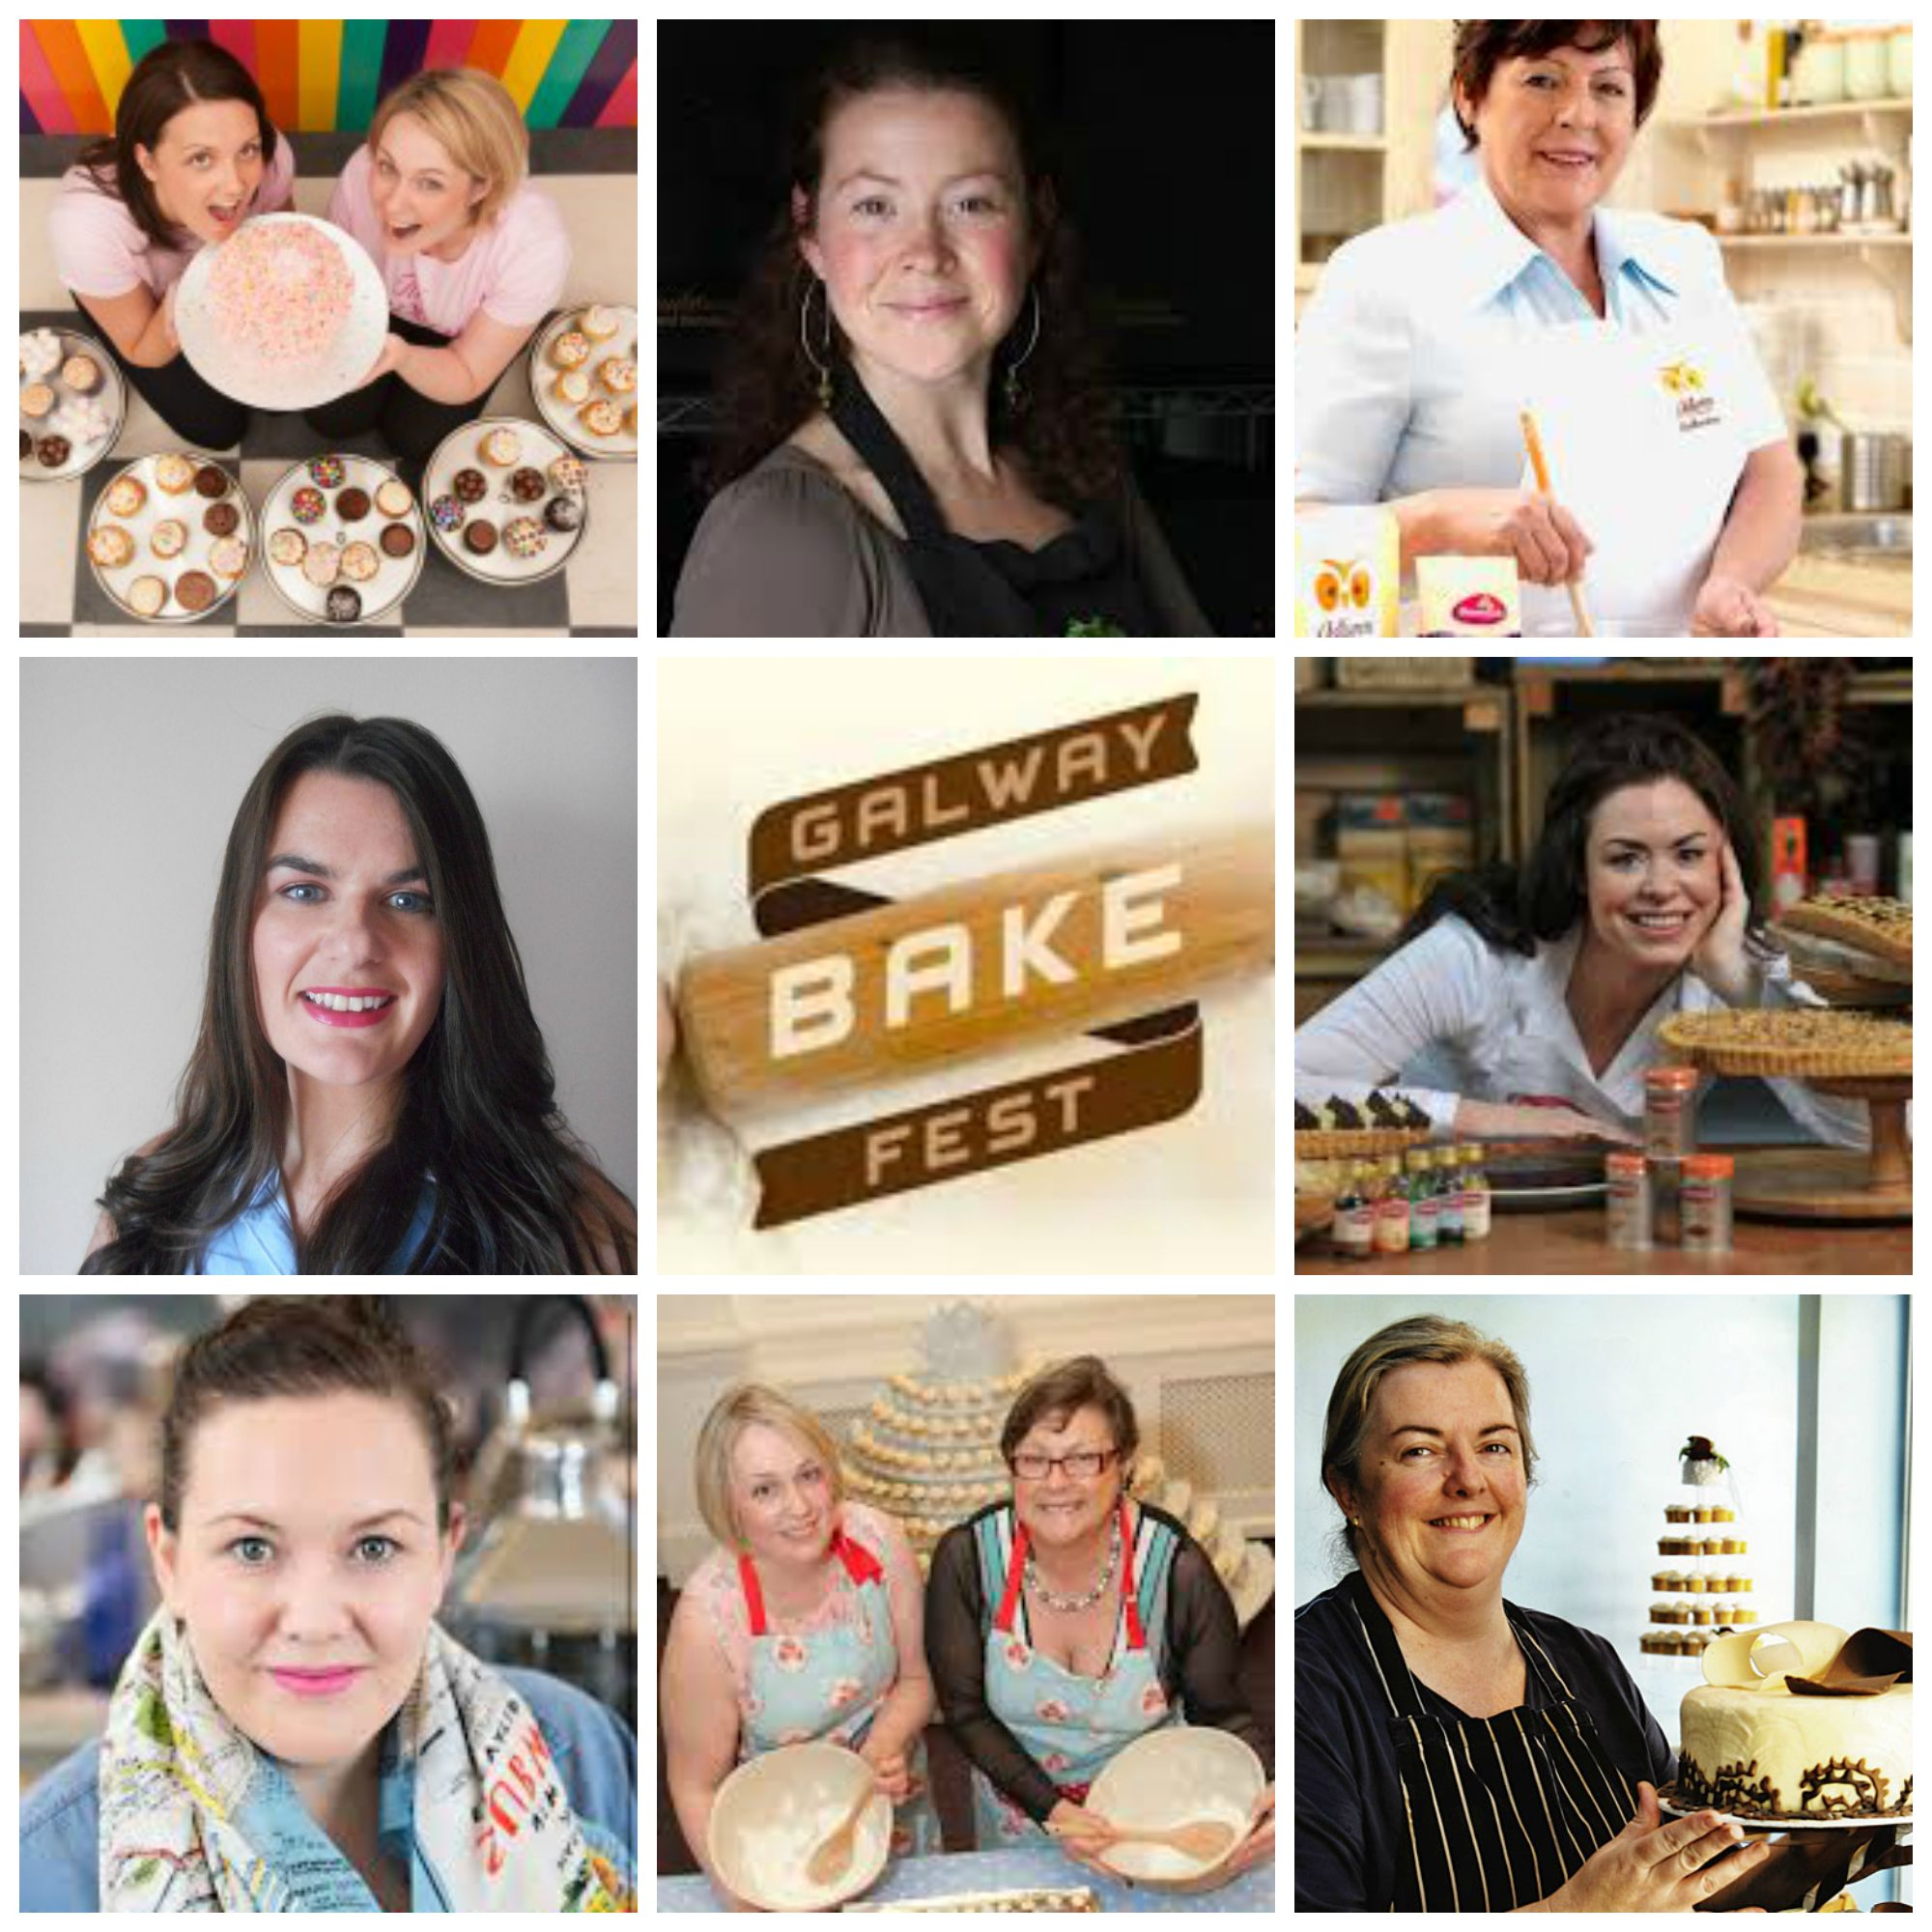 Cake Decorating Classes In Galway : Bake Fest Galway 2015 - Ireland s Biggest Baking Festival ...